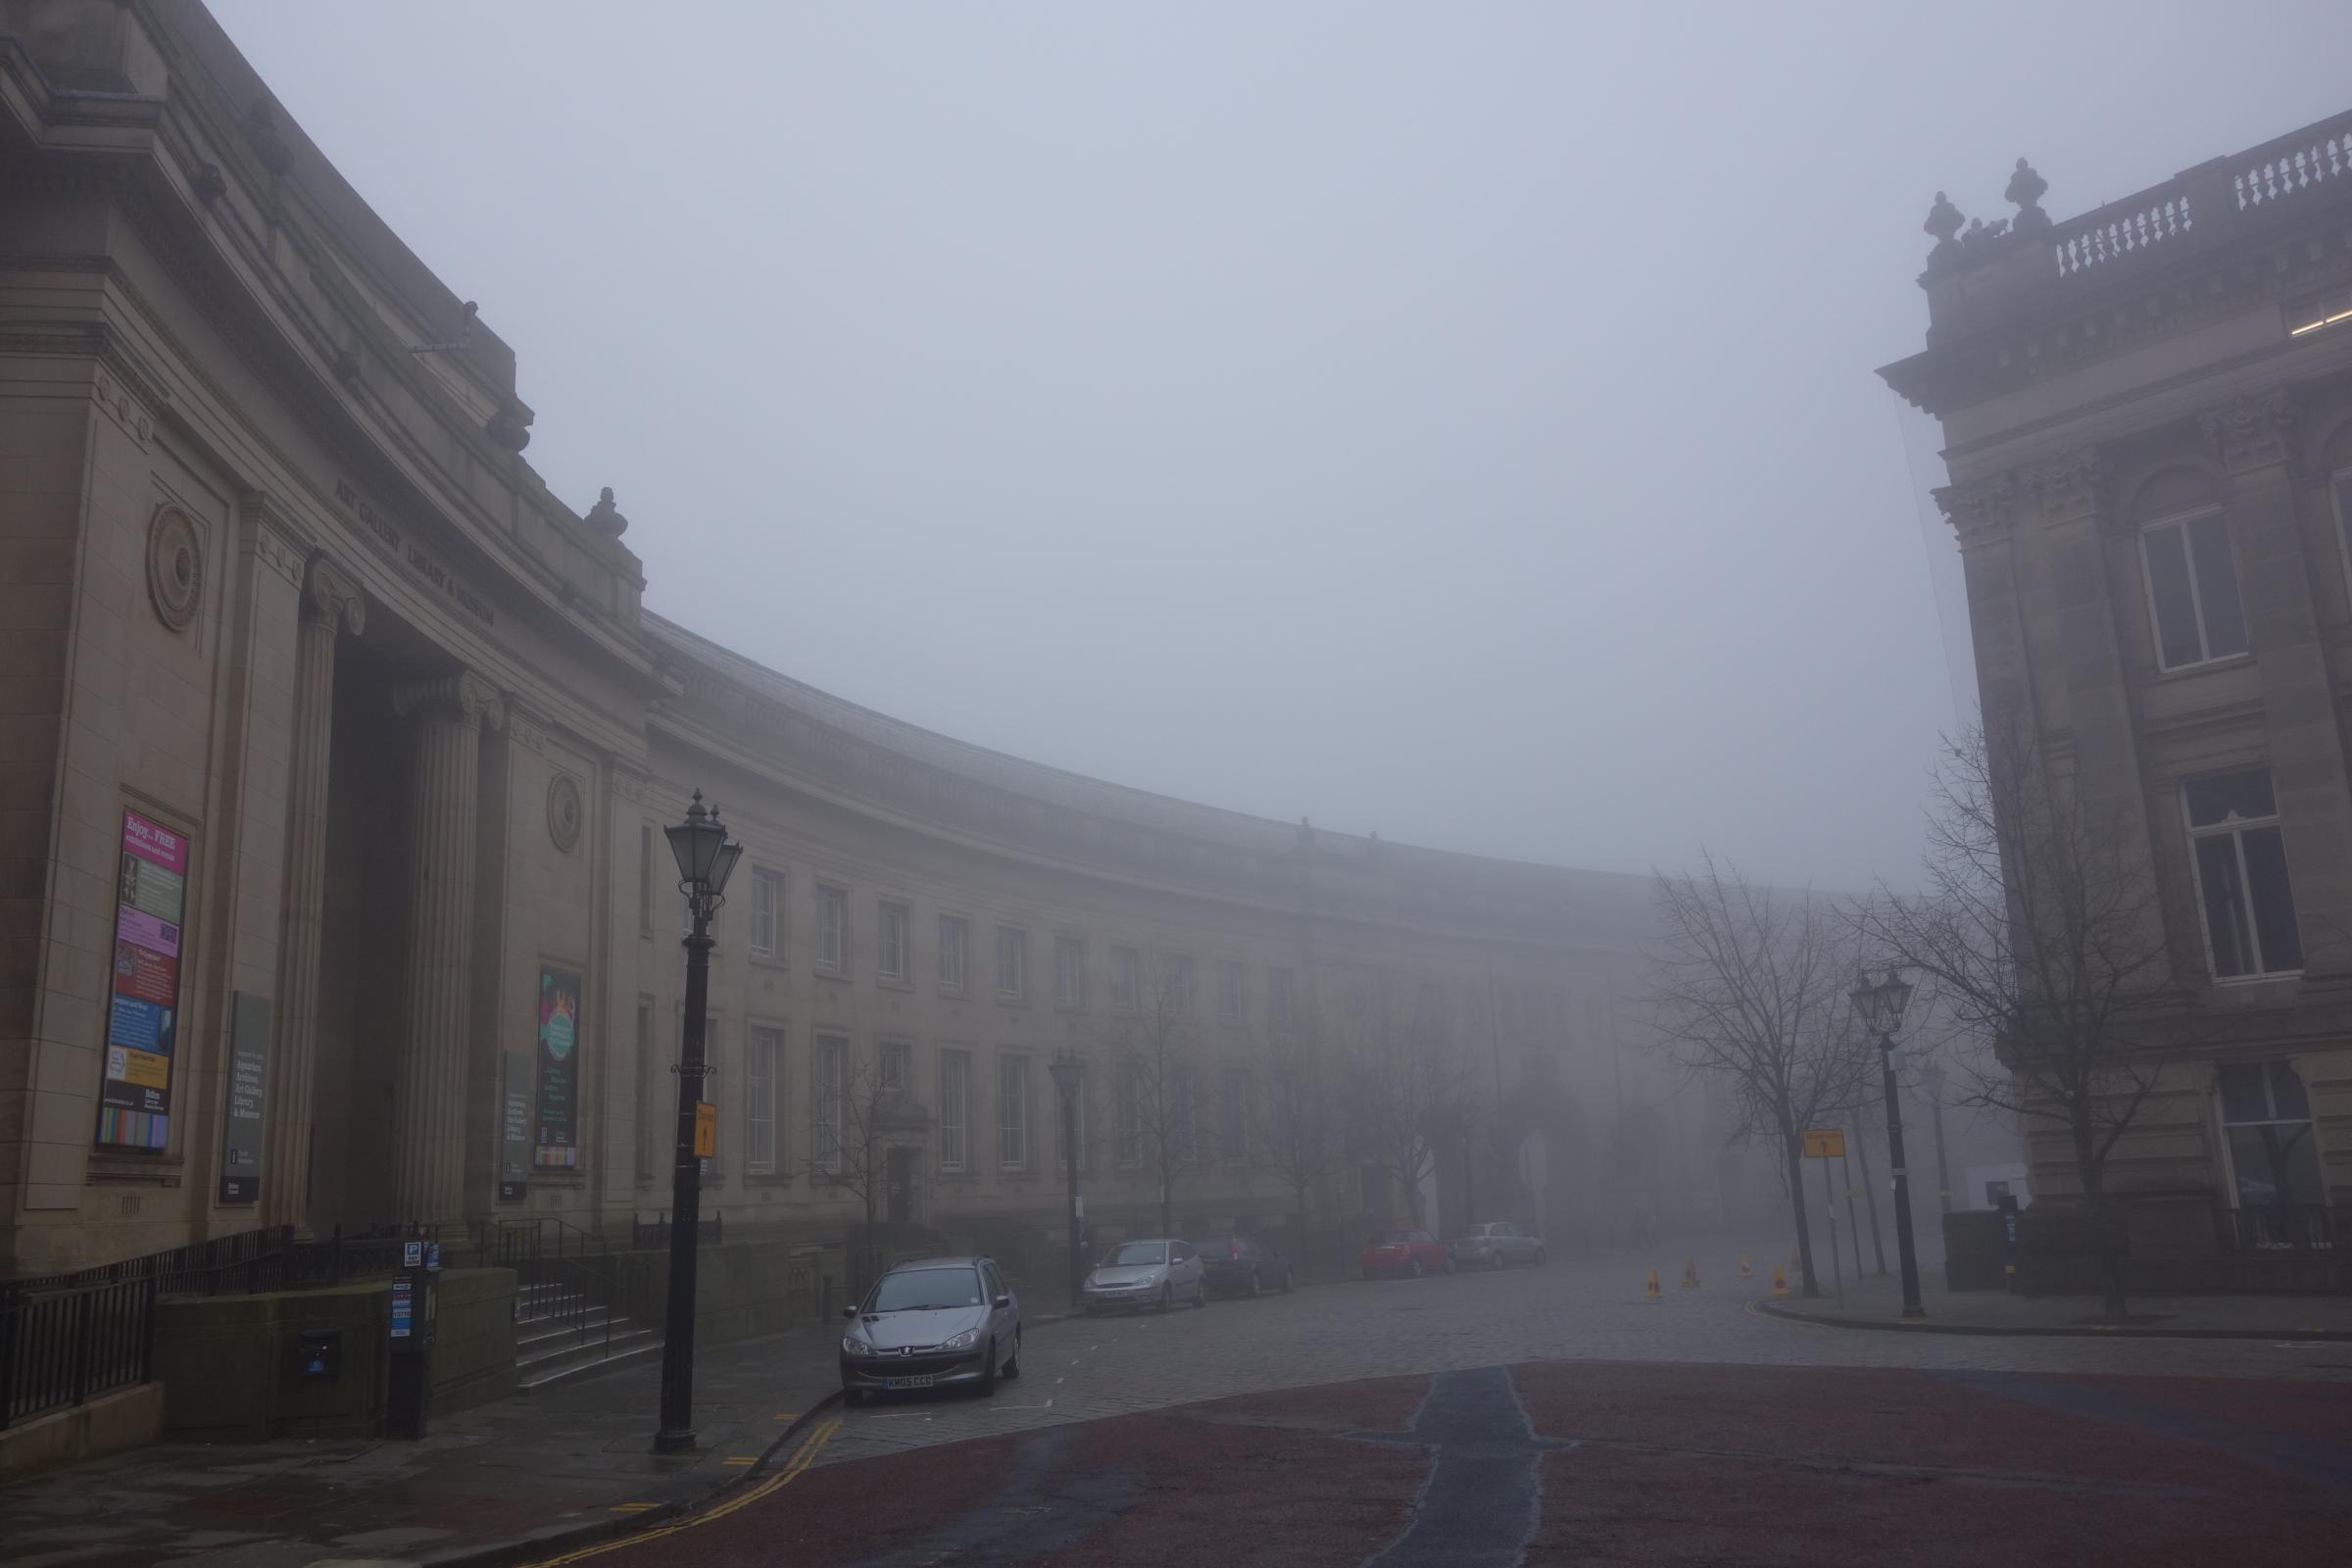 Commuters facing travel chaos as thick fog envelops Bolton